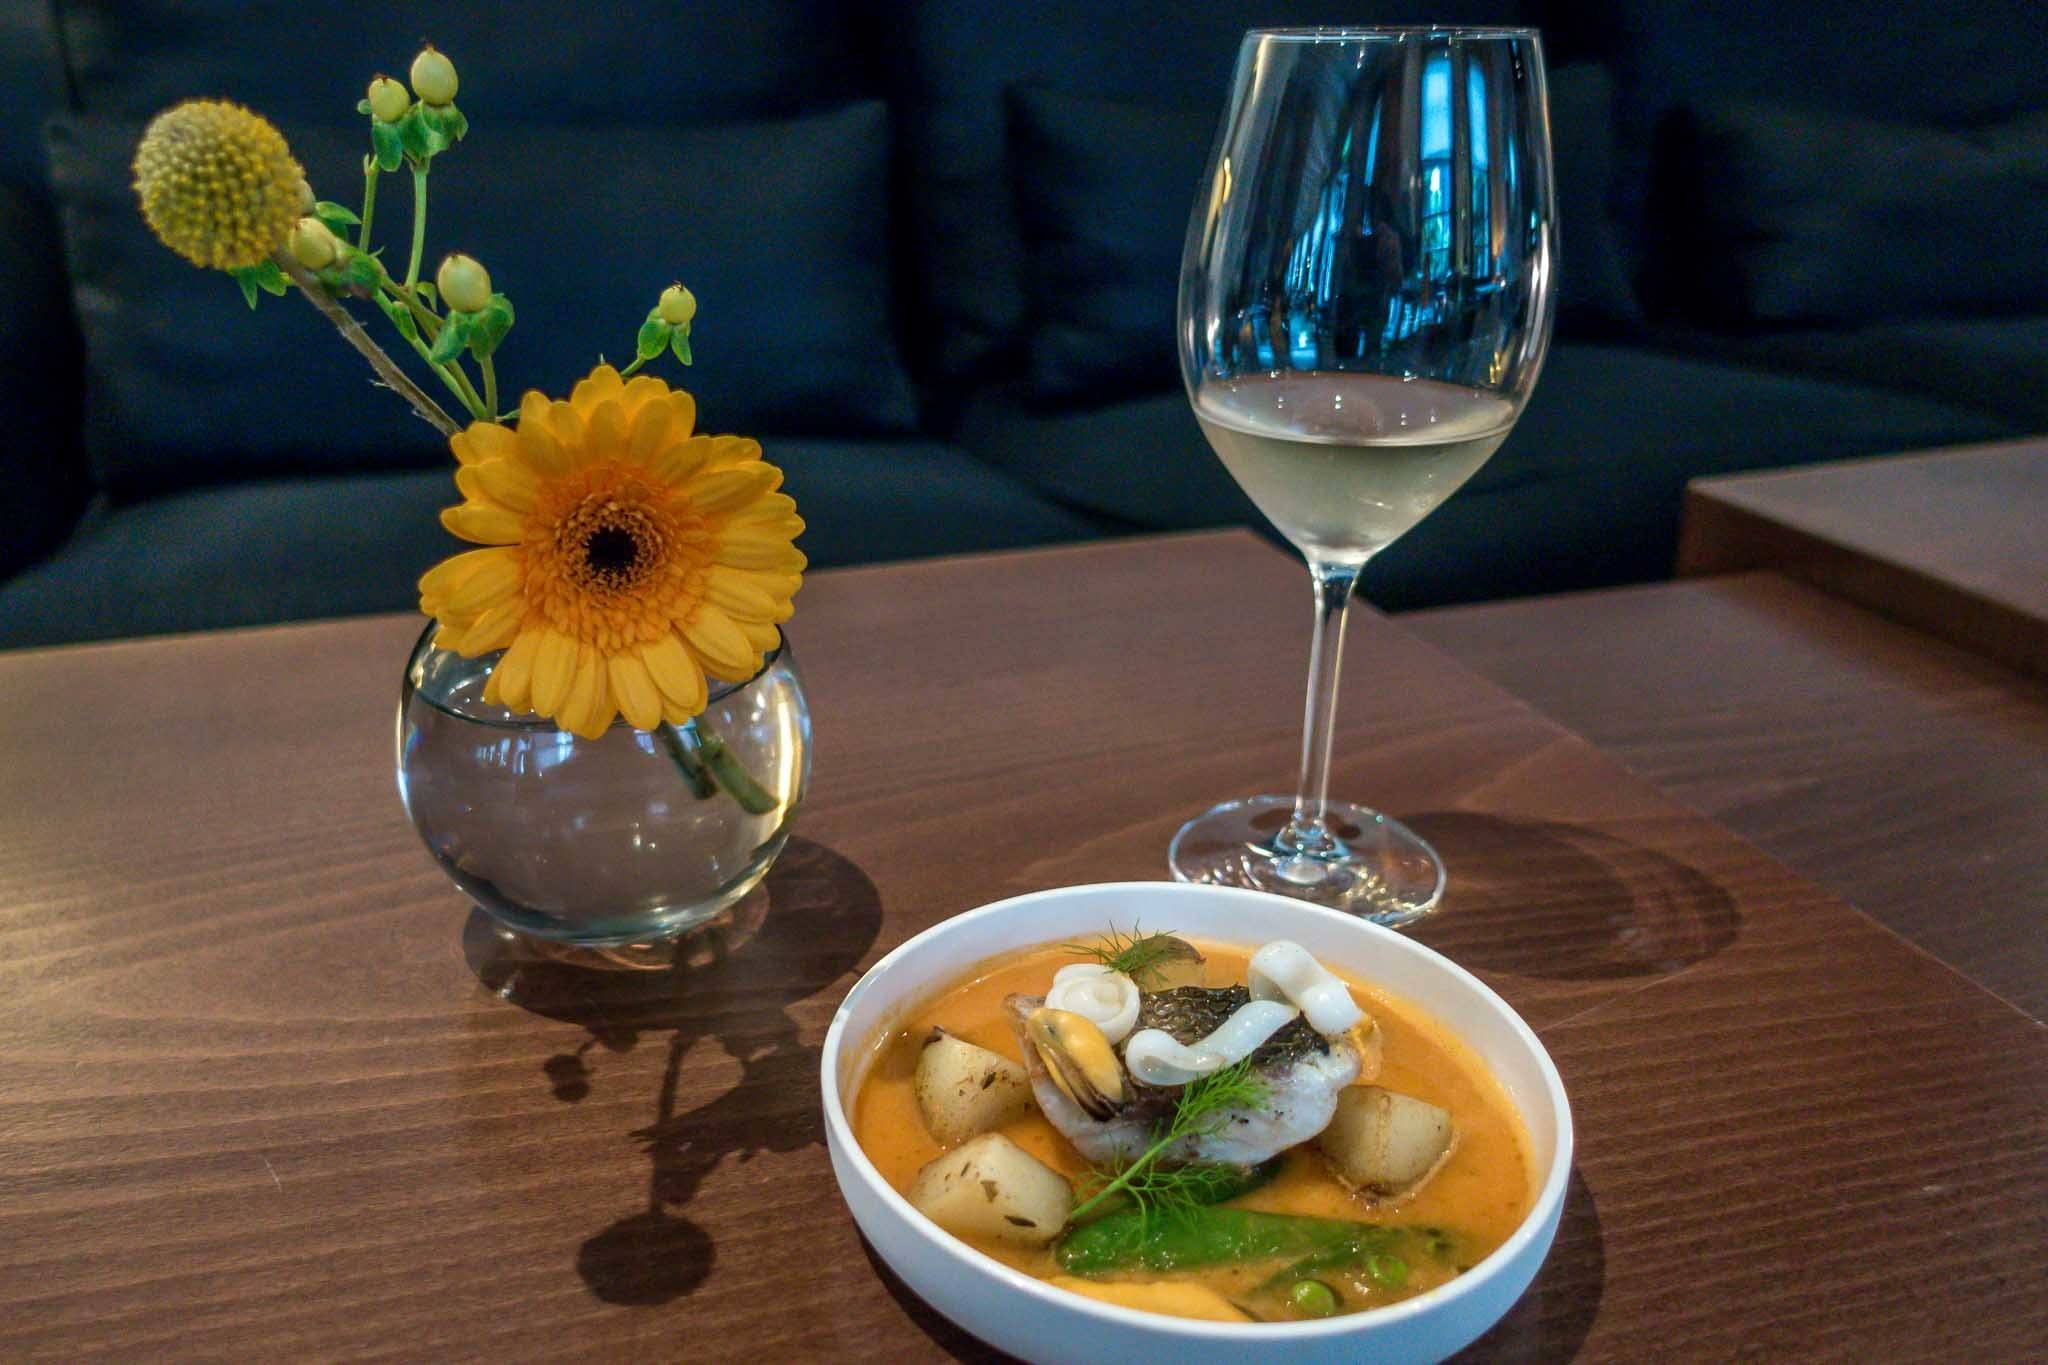 Seafood stew and wine on a table with a flower decoration